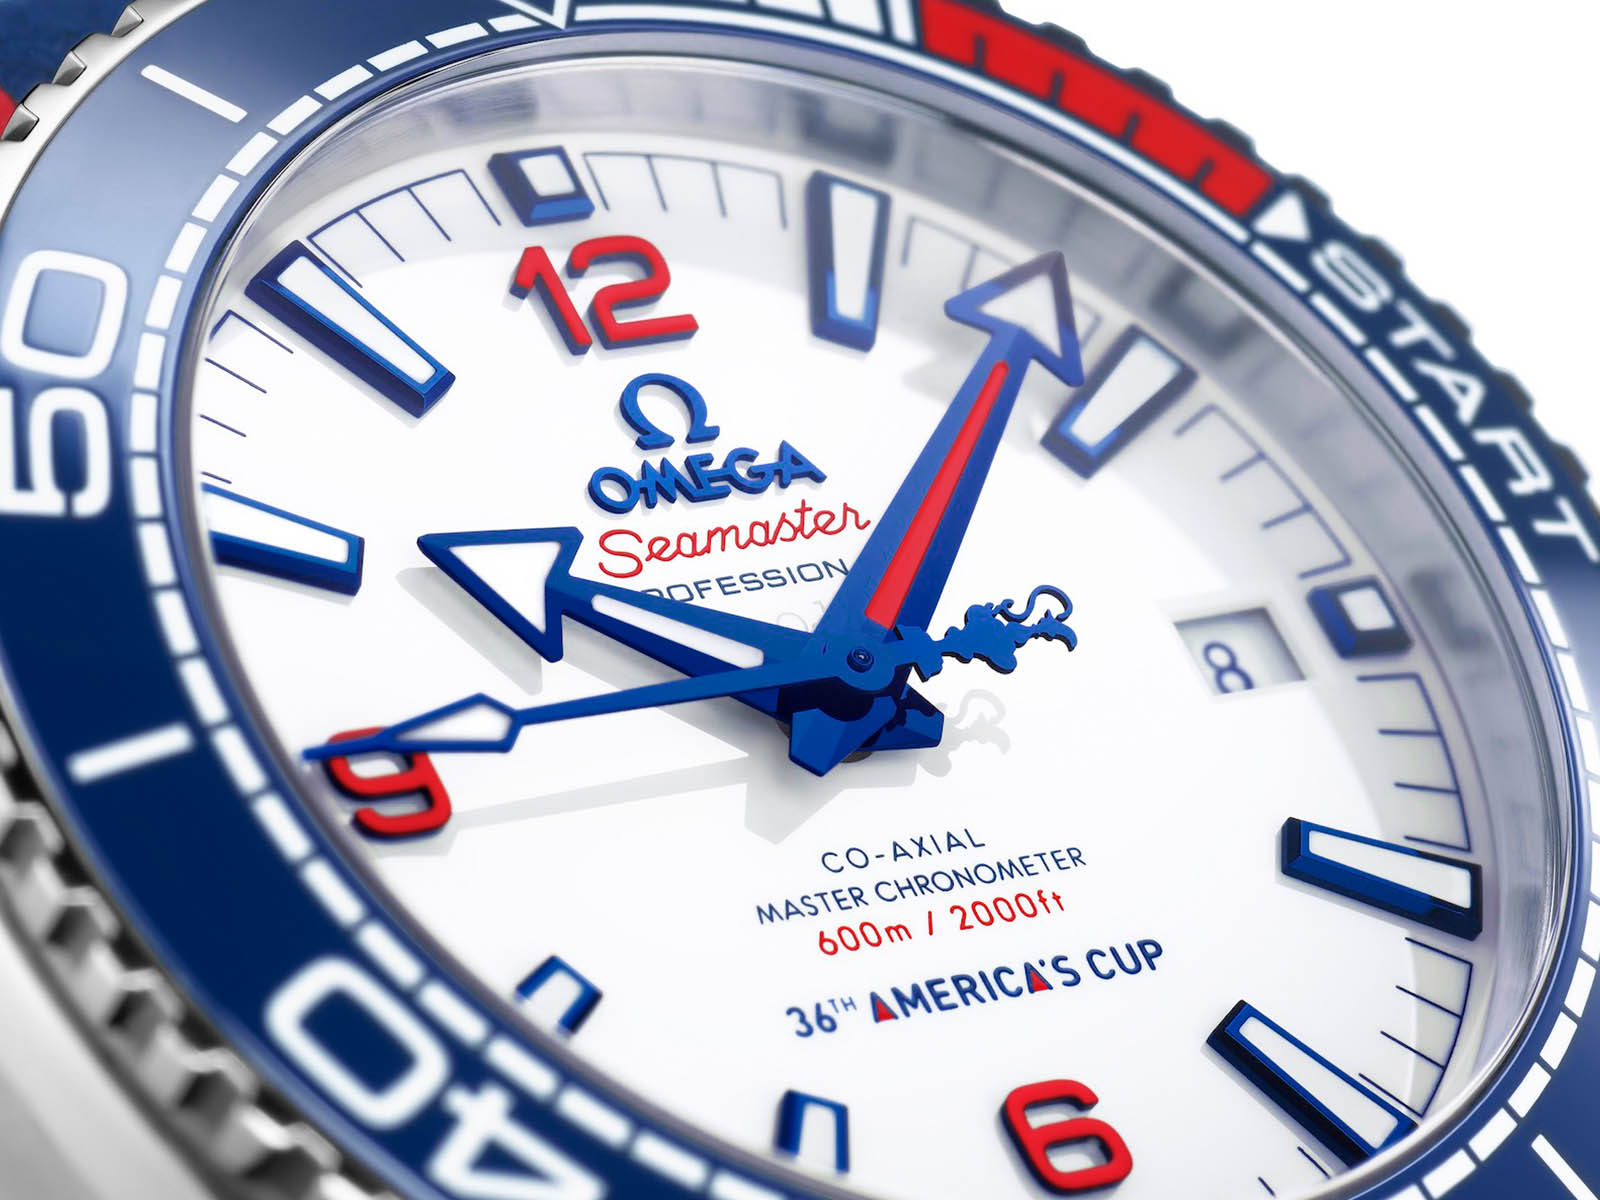 215-32-43-21-04-001-omega-seamaster-planet-ocean-36th-america-s-cup-4.jpg